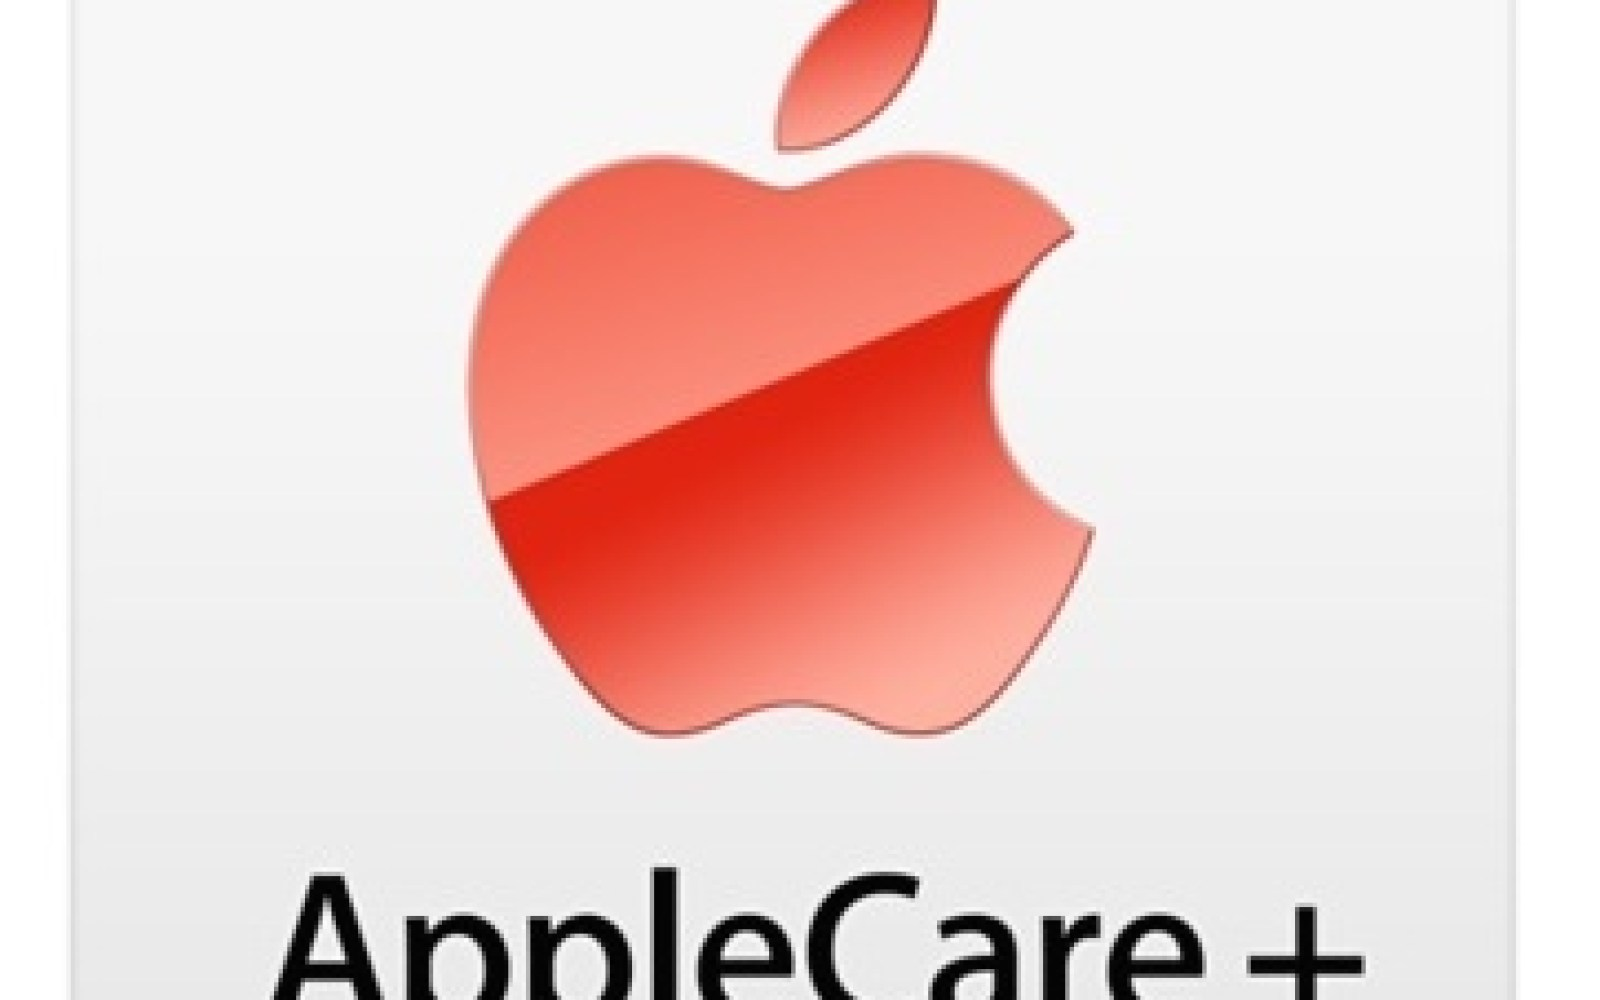 Should you protect your new iPhone 6/6 Plus with AppleCare+ or SquareTrade?